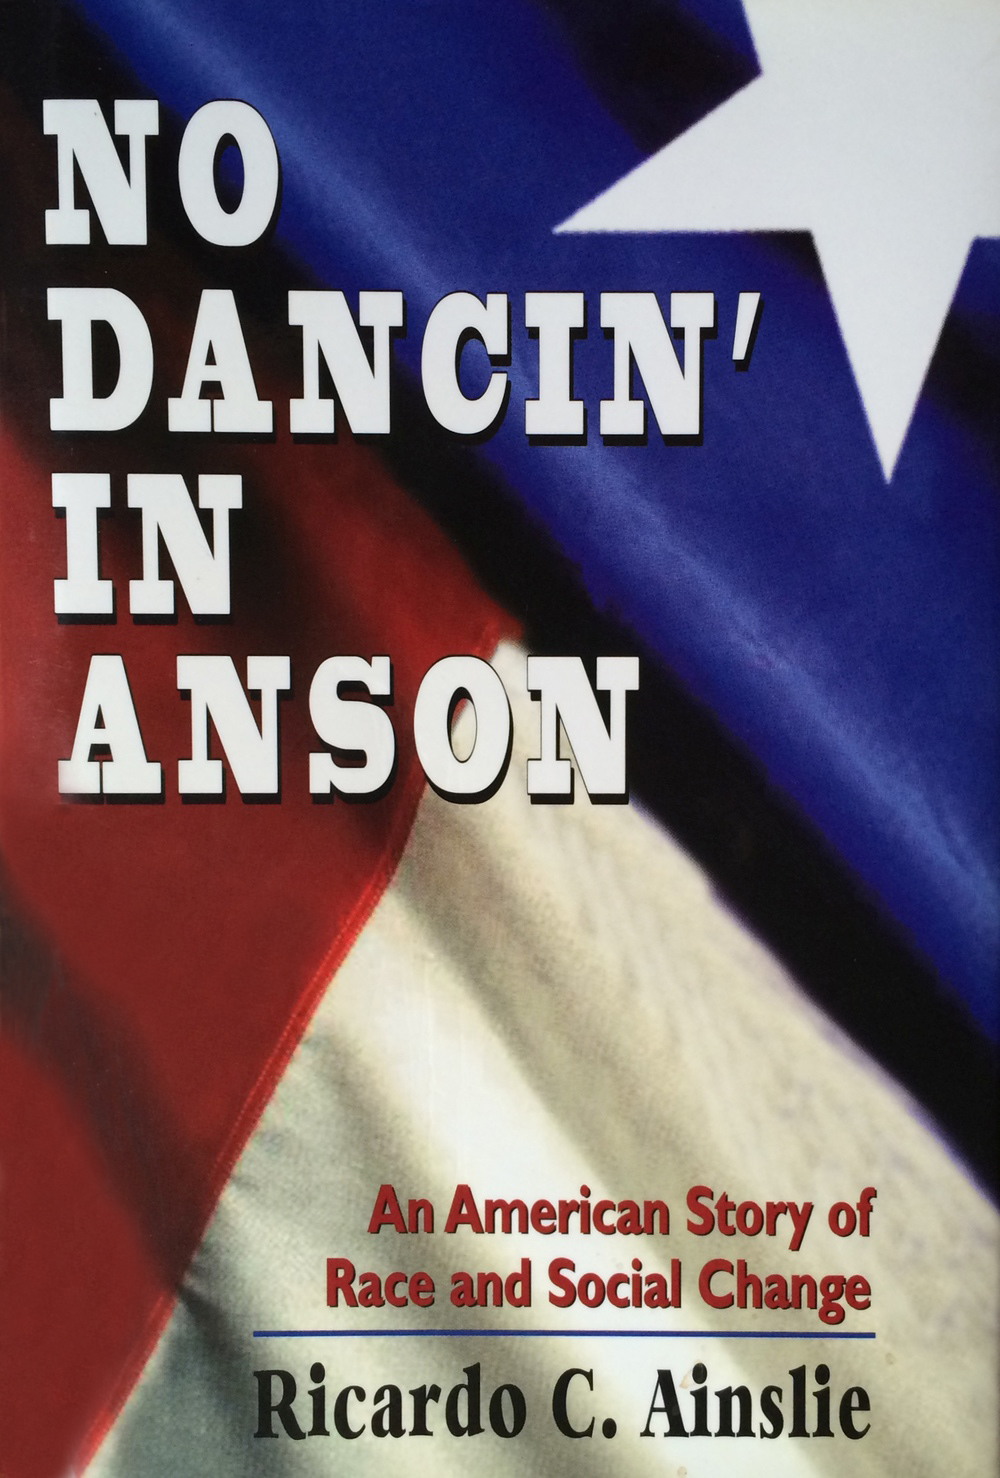 No Dancin' in Anson - An American Story of Race and Social Change